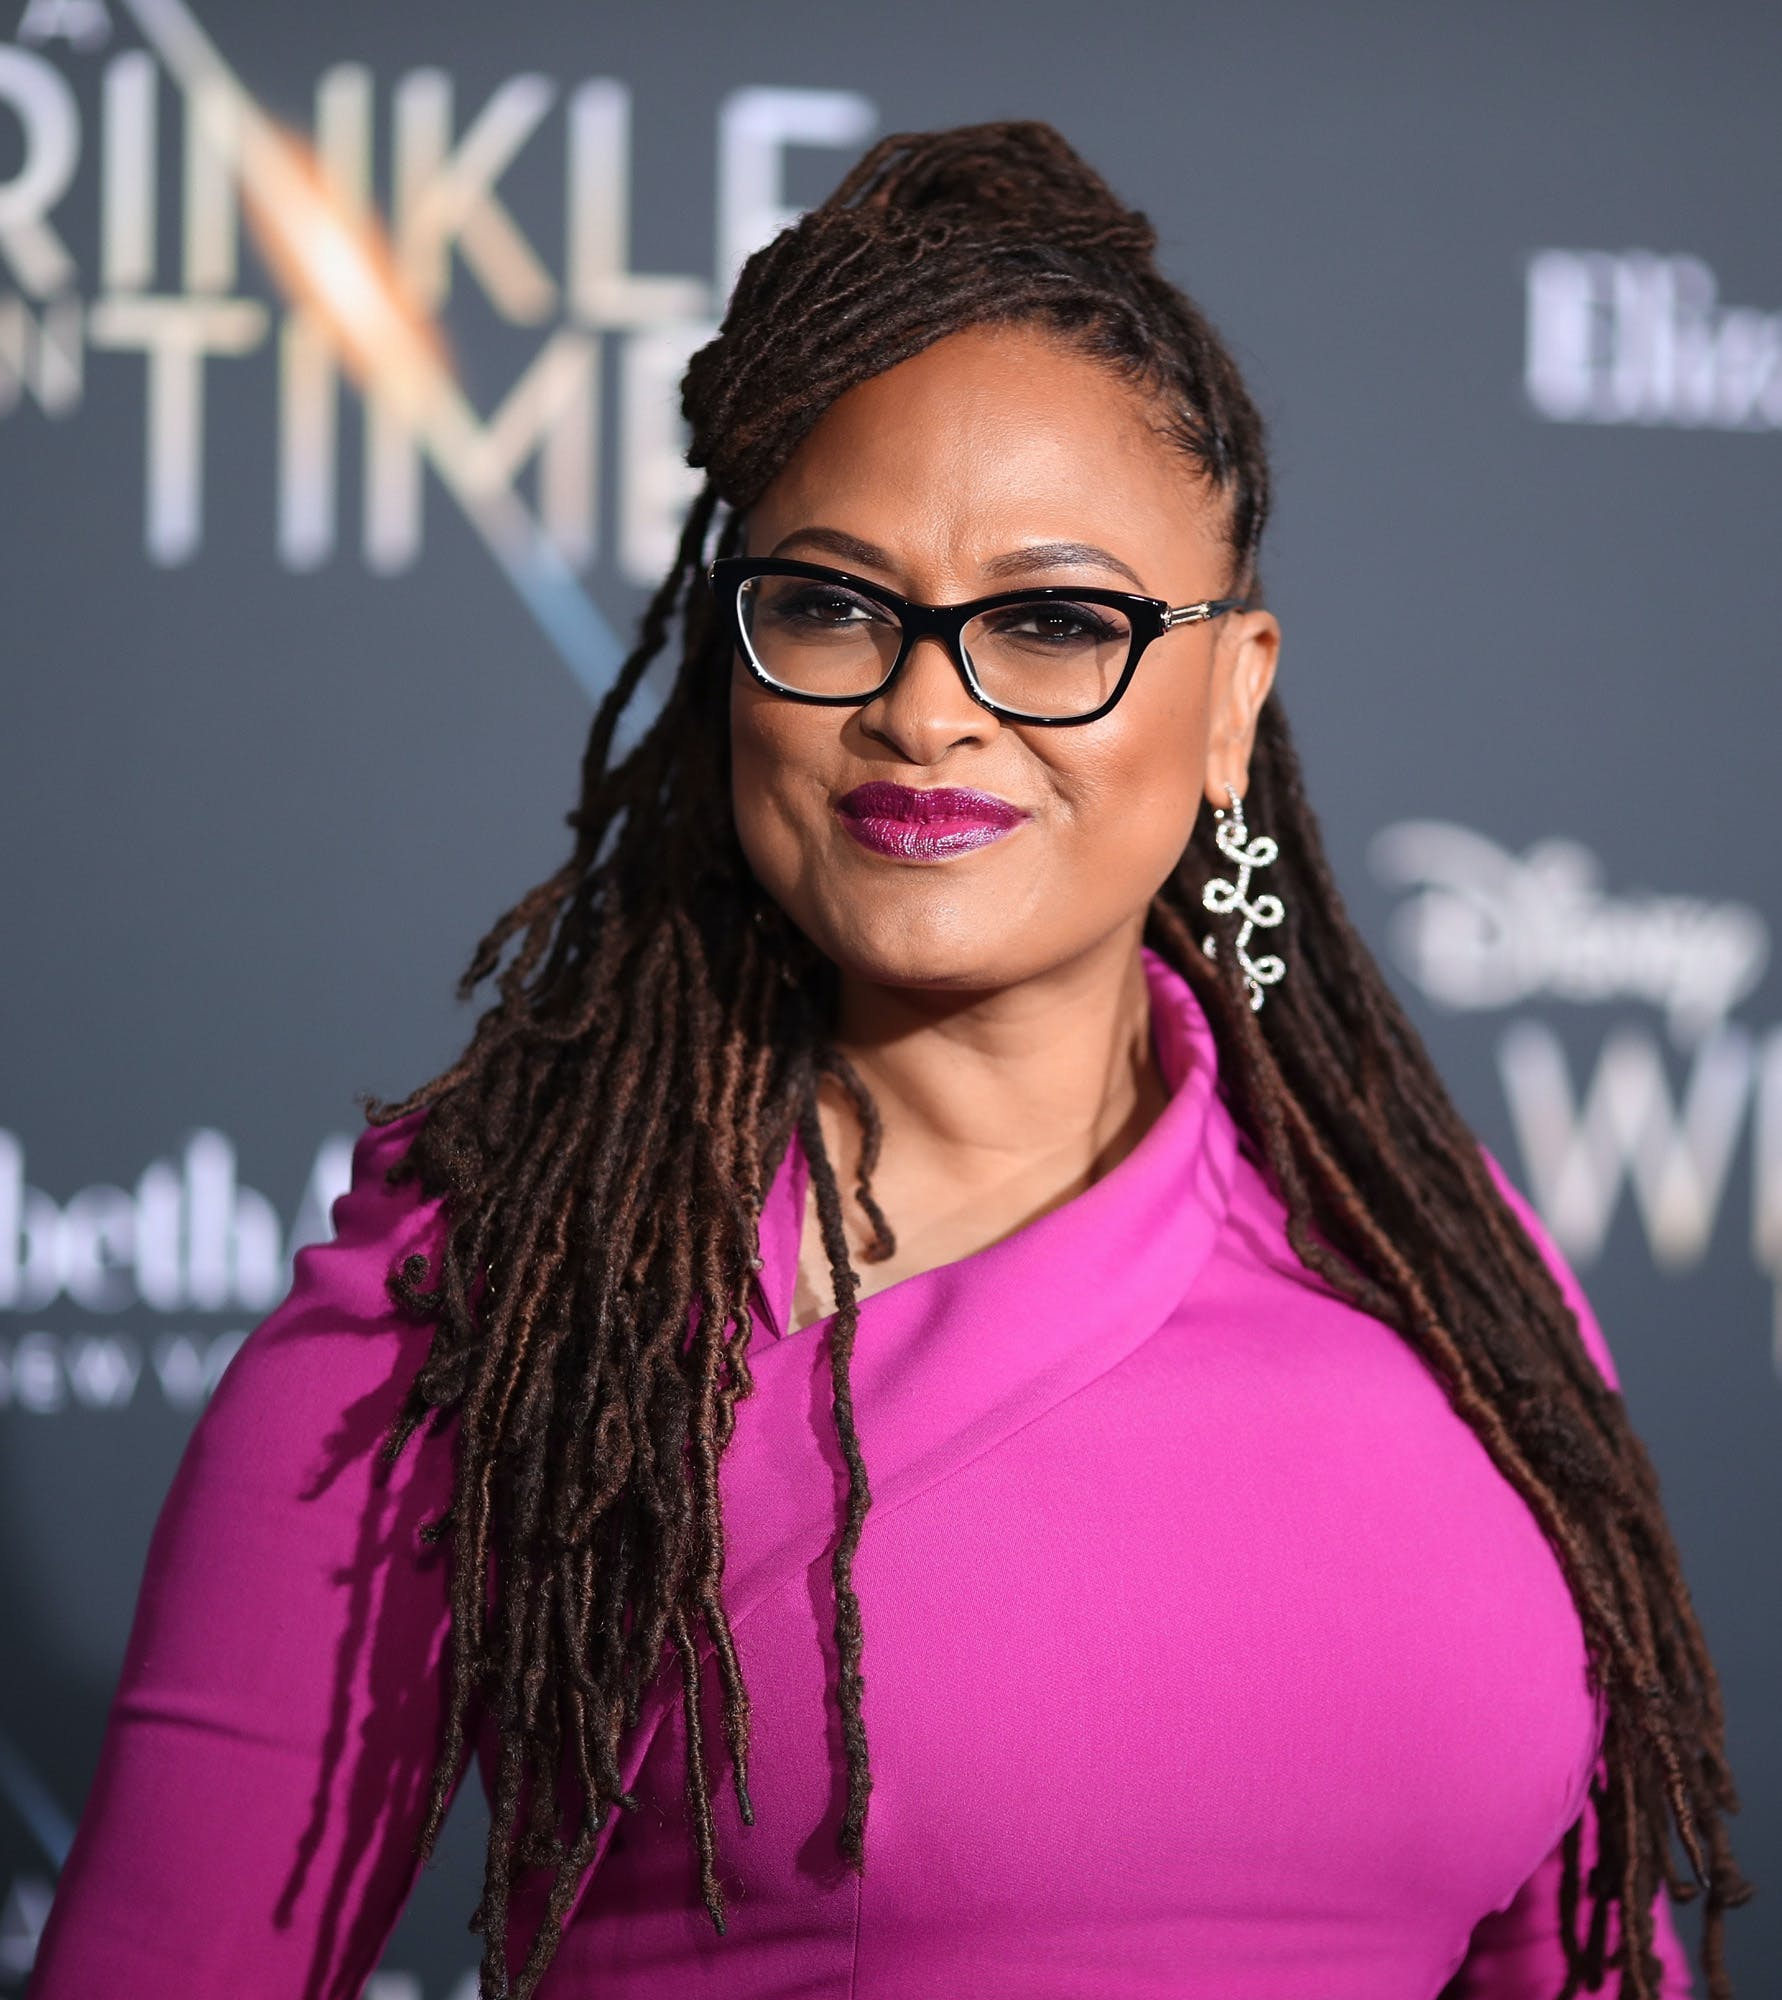 Ava DuVernay at the premier of A Wrinkle In Time